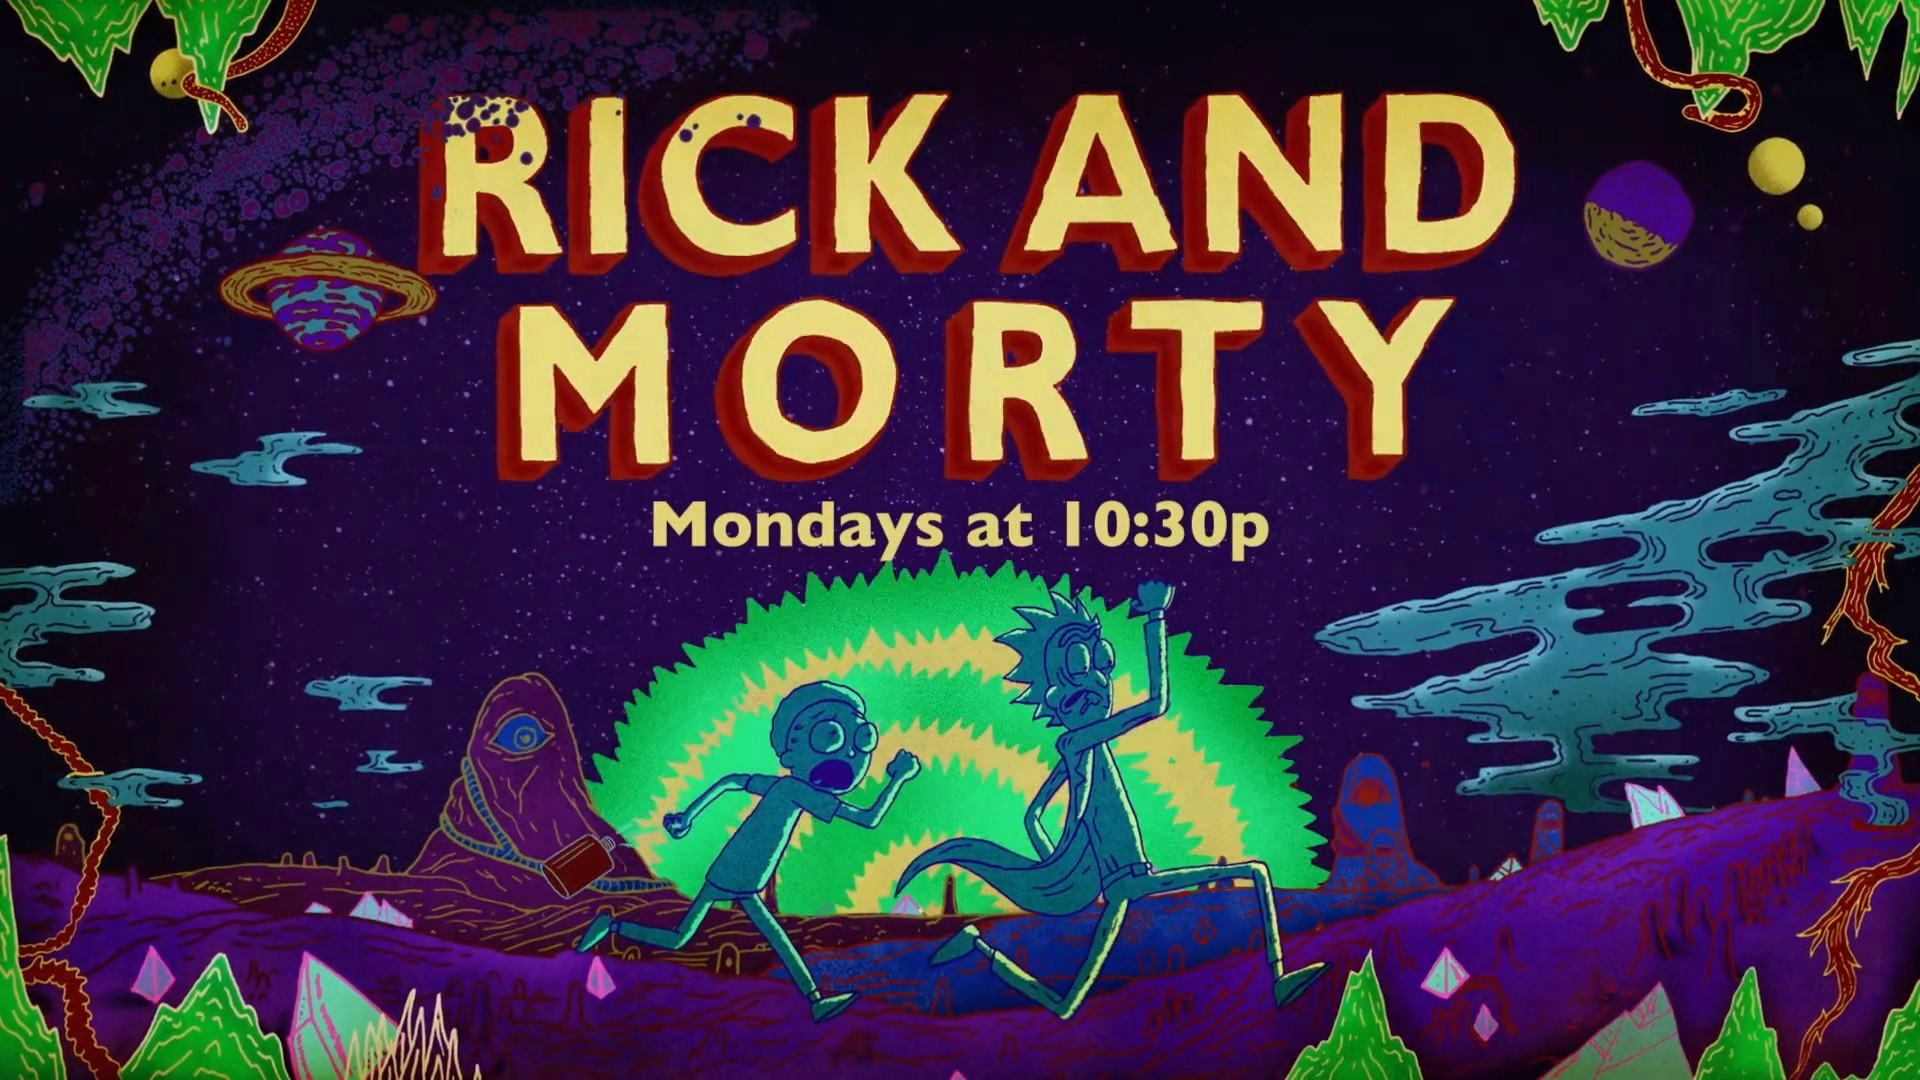 Rick and Morty wallpaper ·â'  Download free beautiful HD